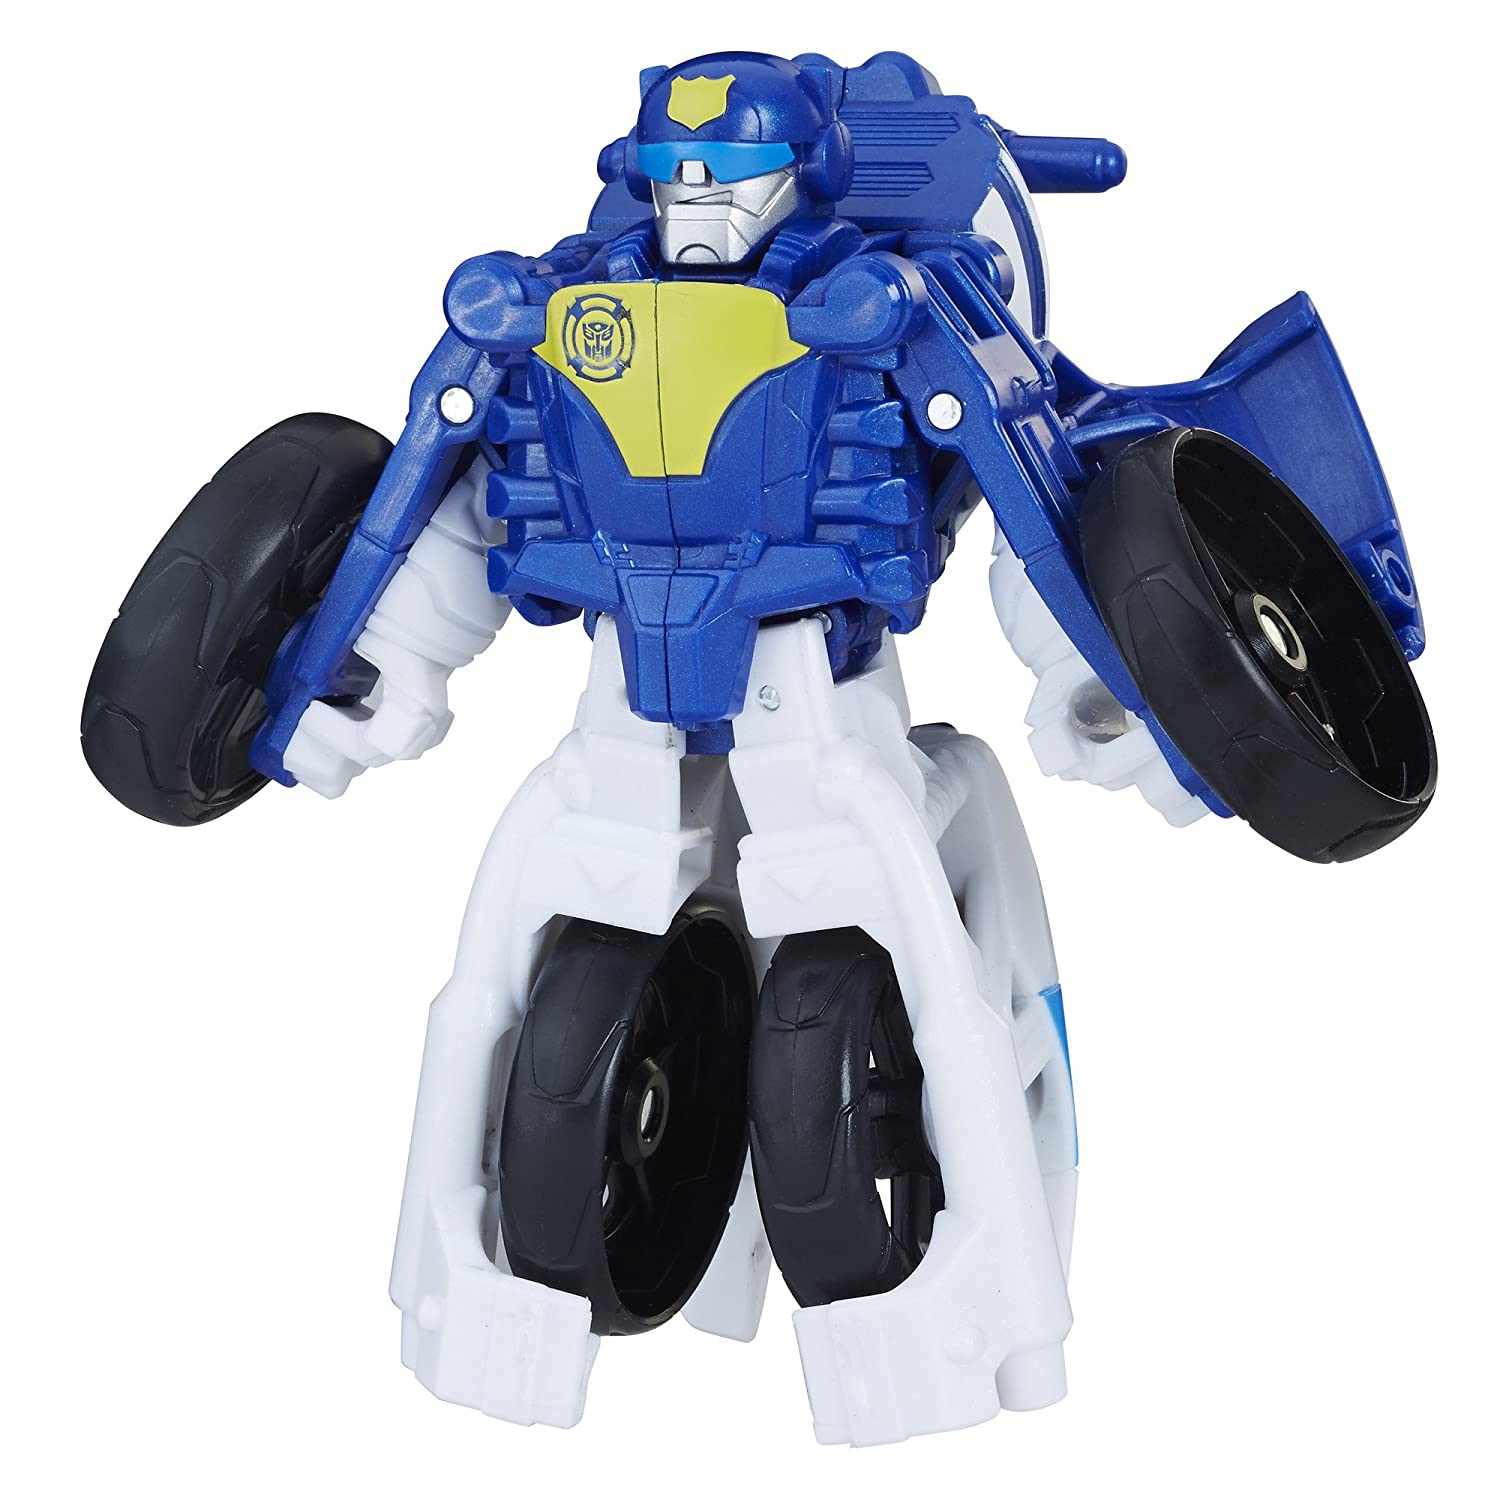 Playskool Heroes Transformers Rescue Bots Chase The Police-Bot Hasbro E0148